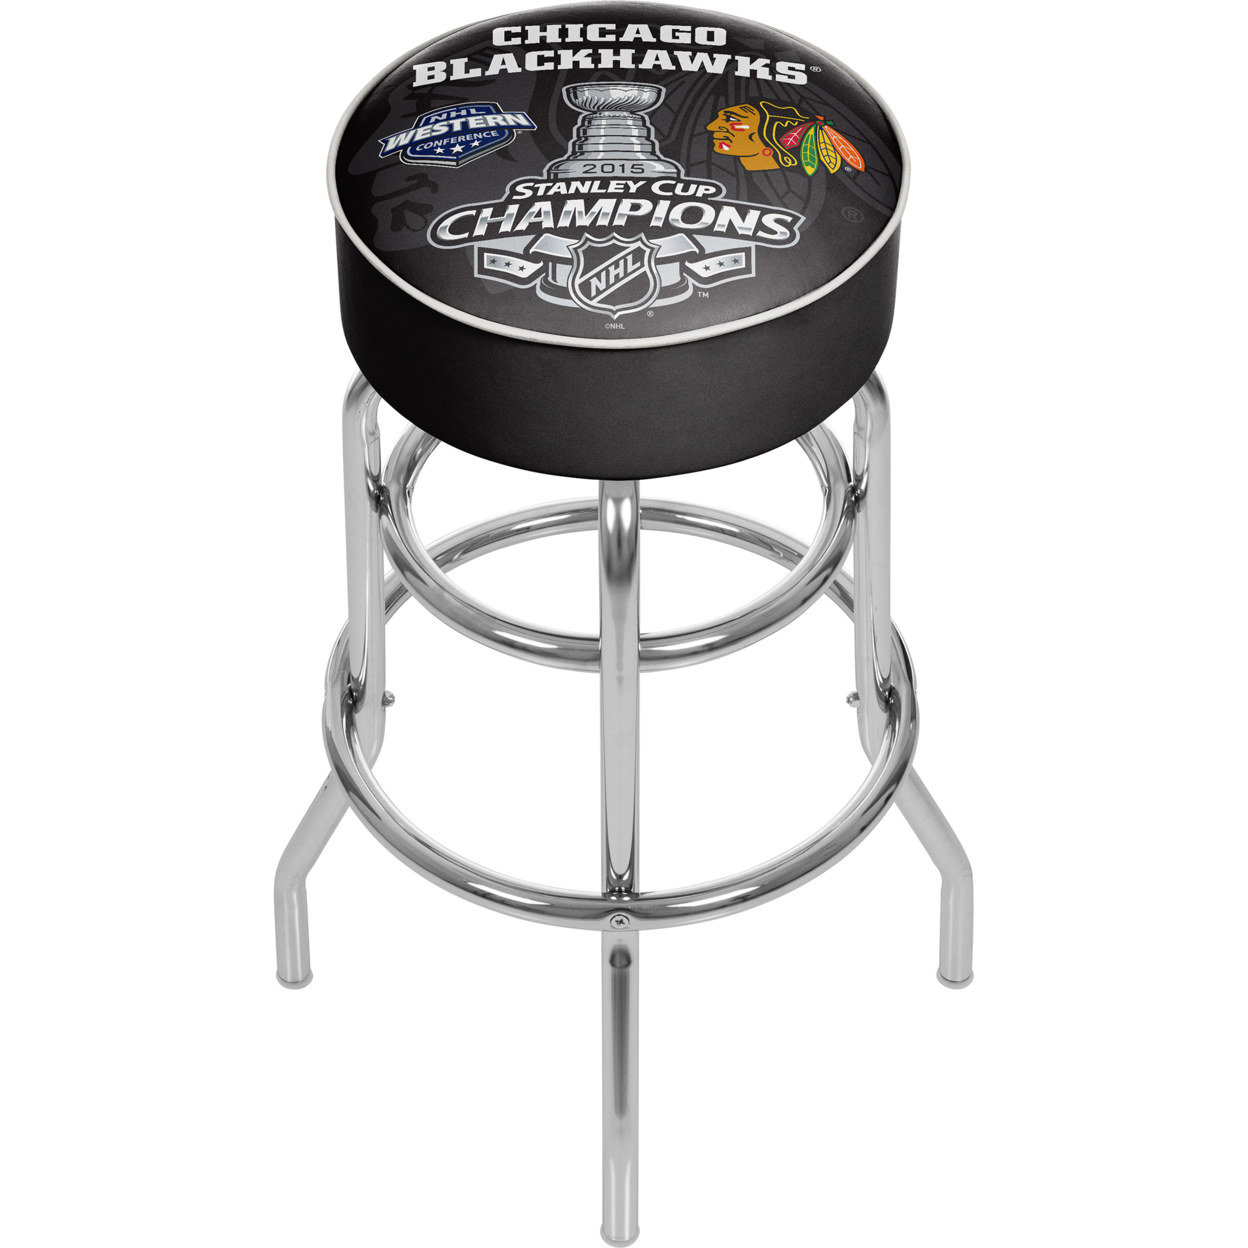 Chicago Blackhawks Swivel Bar Stool - 2015 Stanley Cup Champs